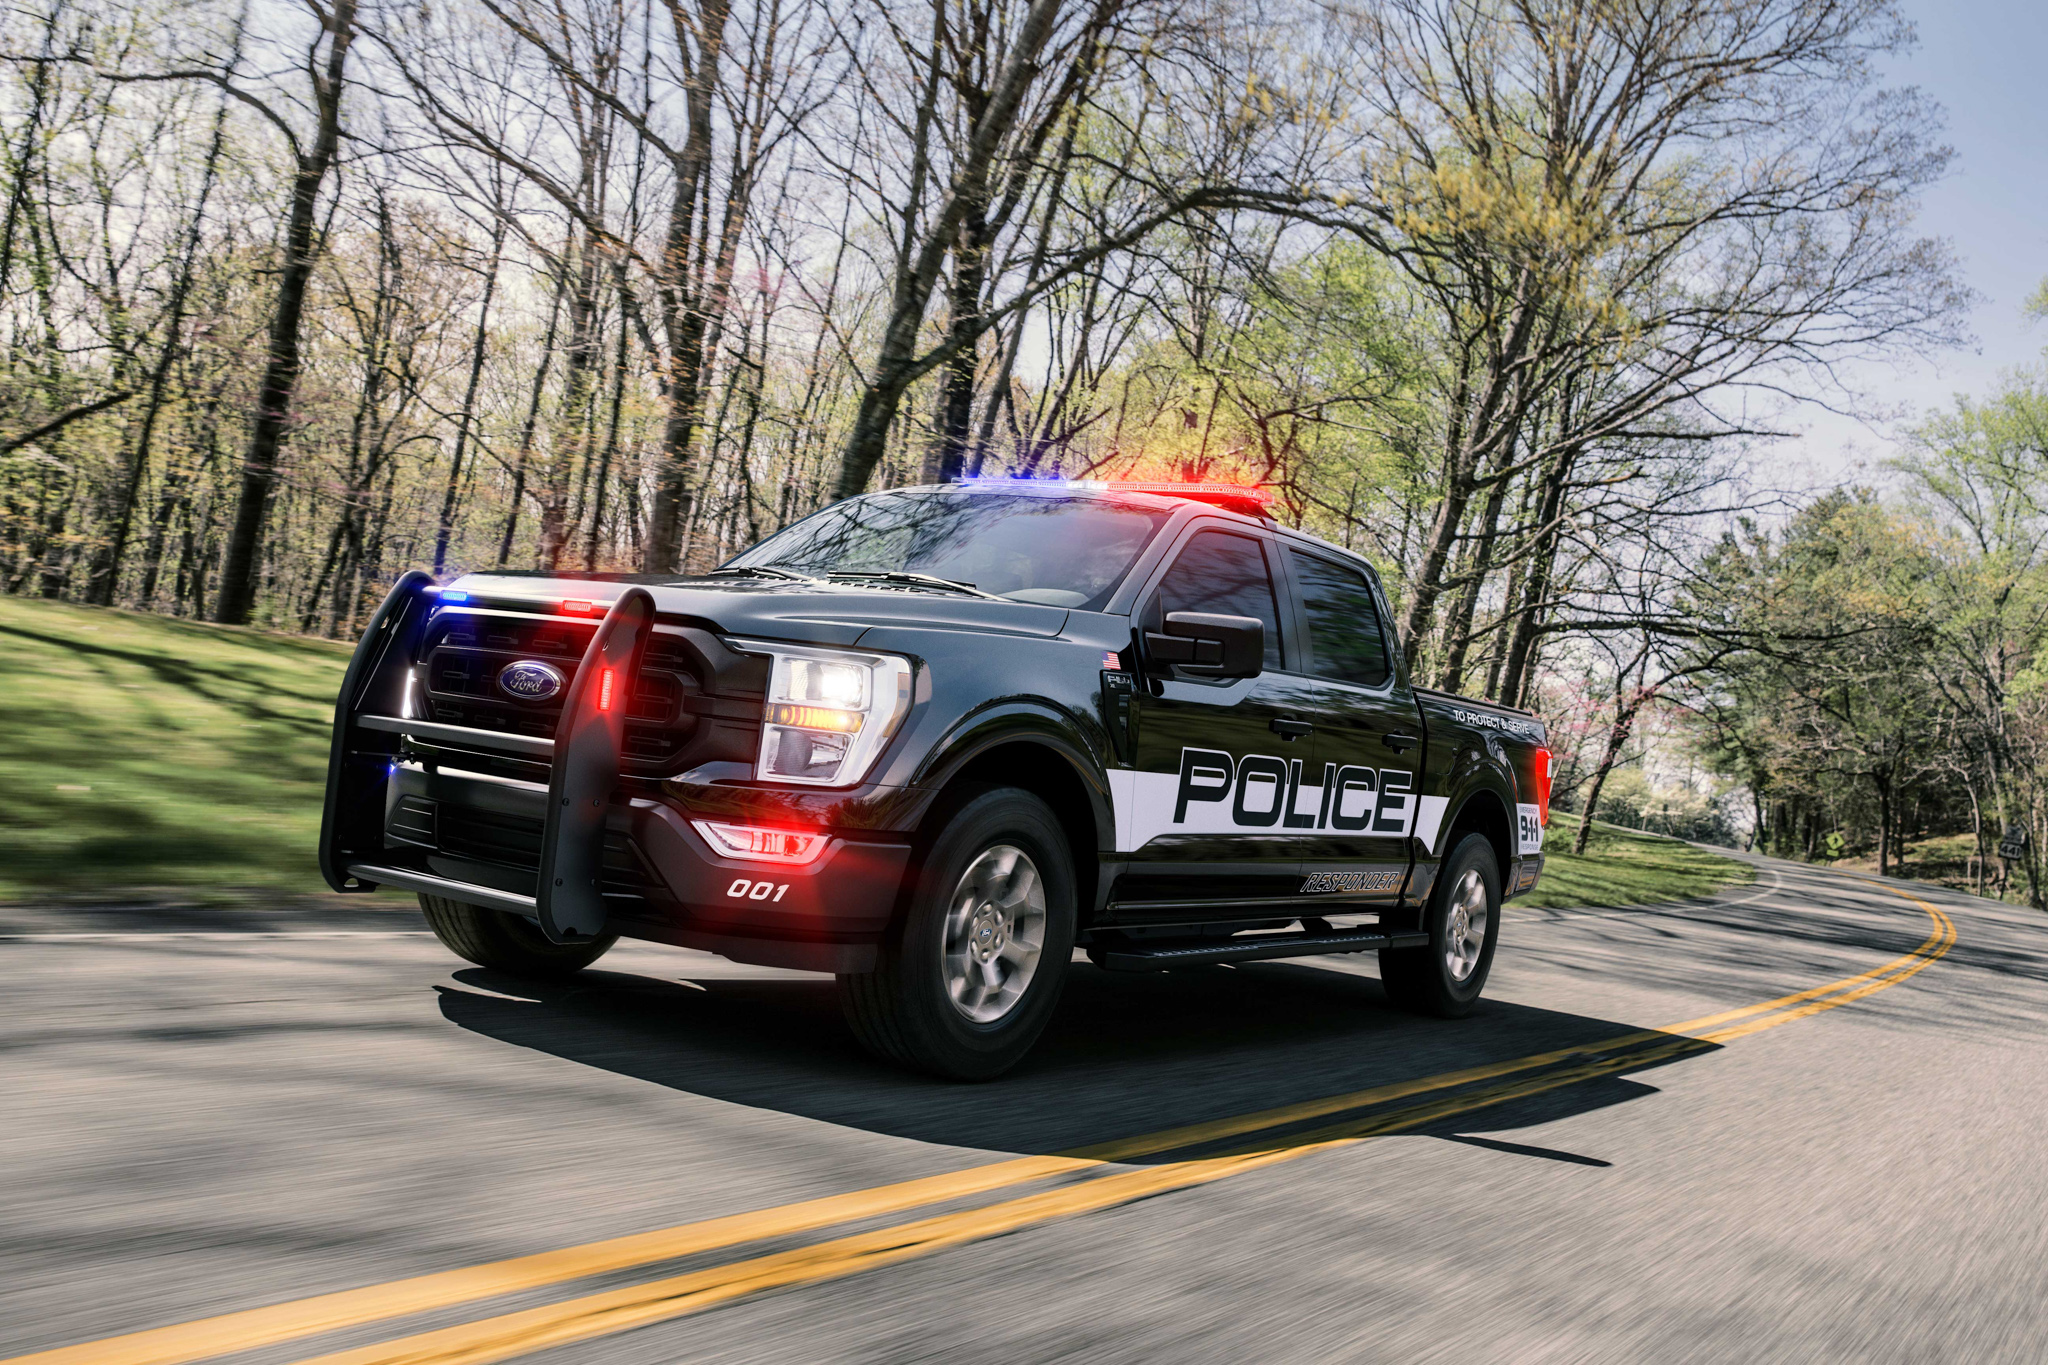 The Quickest Police Car Is a Truck: The Truck Show Podcast, Episode 182